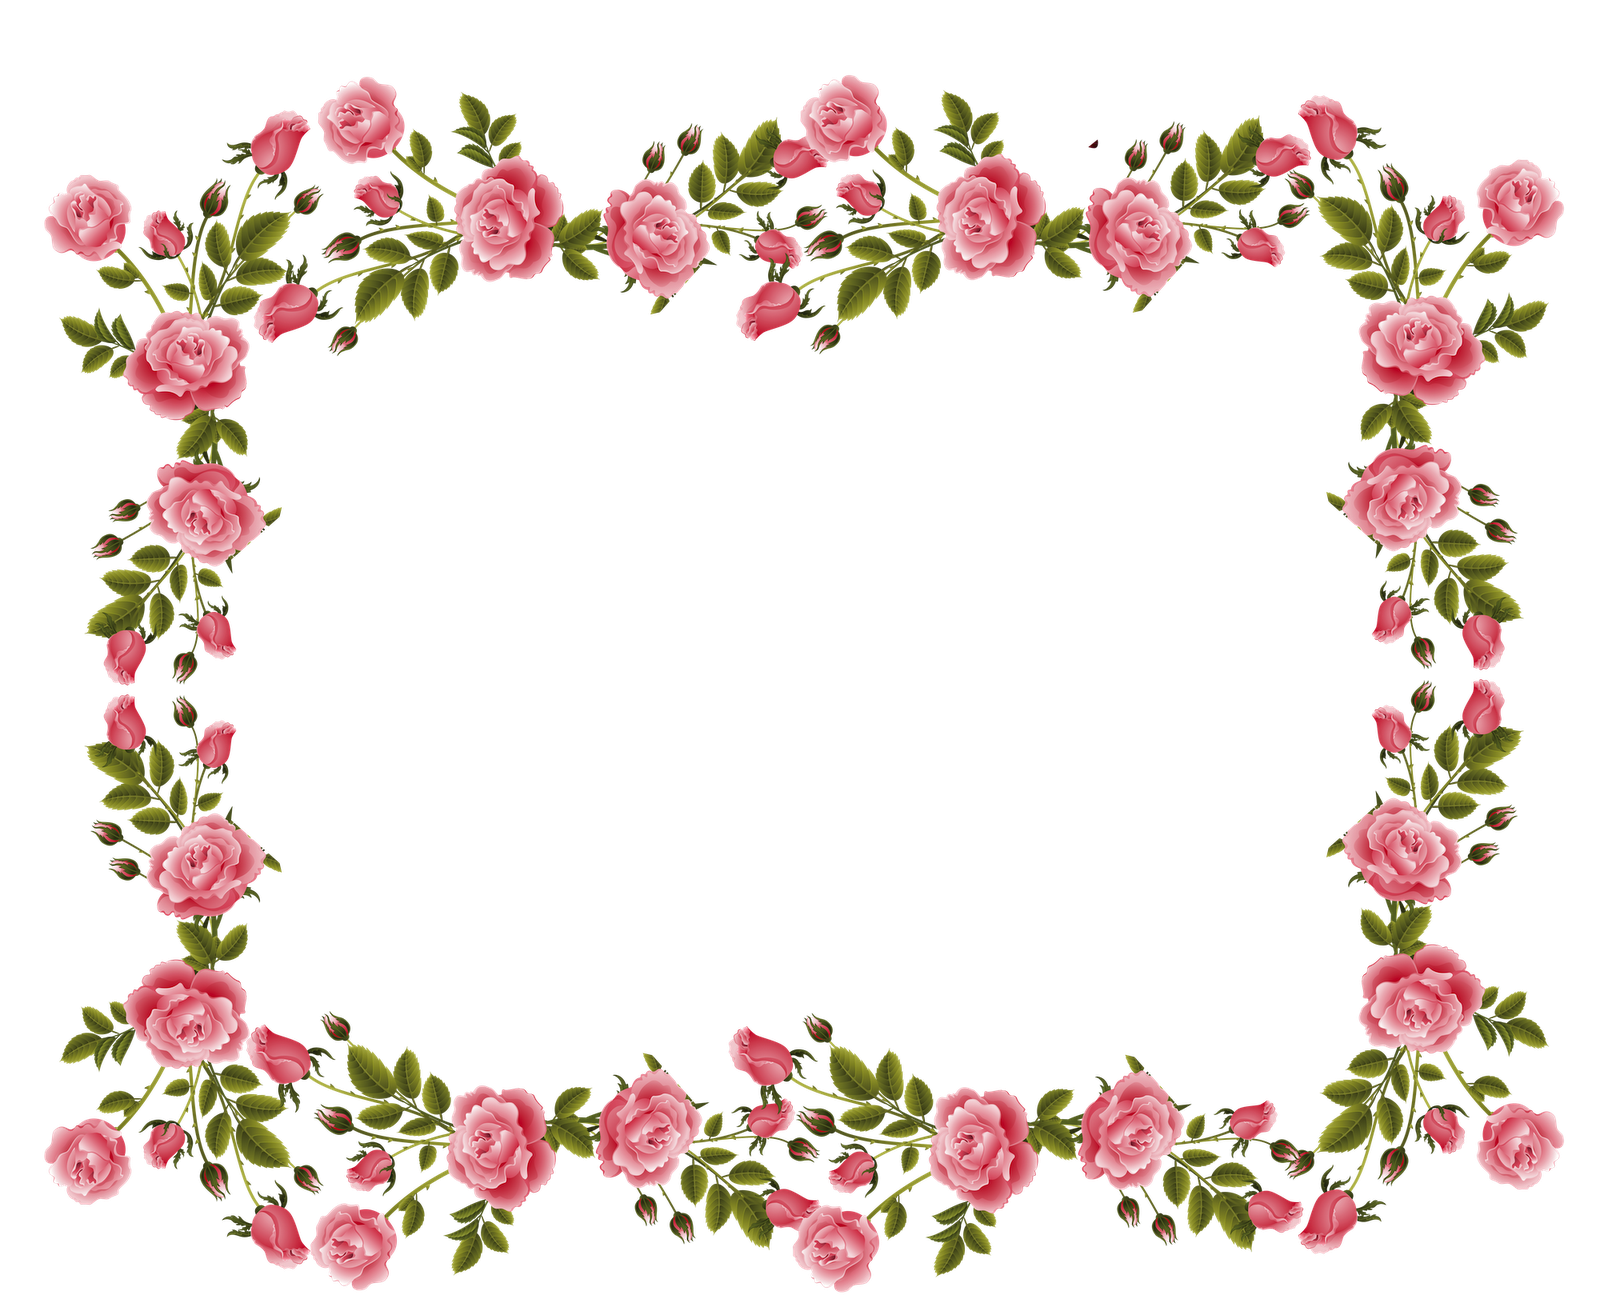 picture download rose border clipart